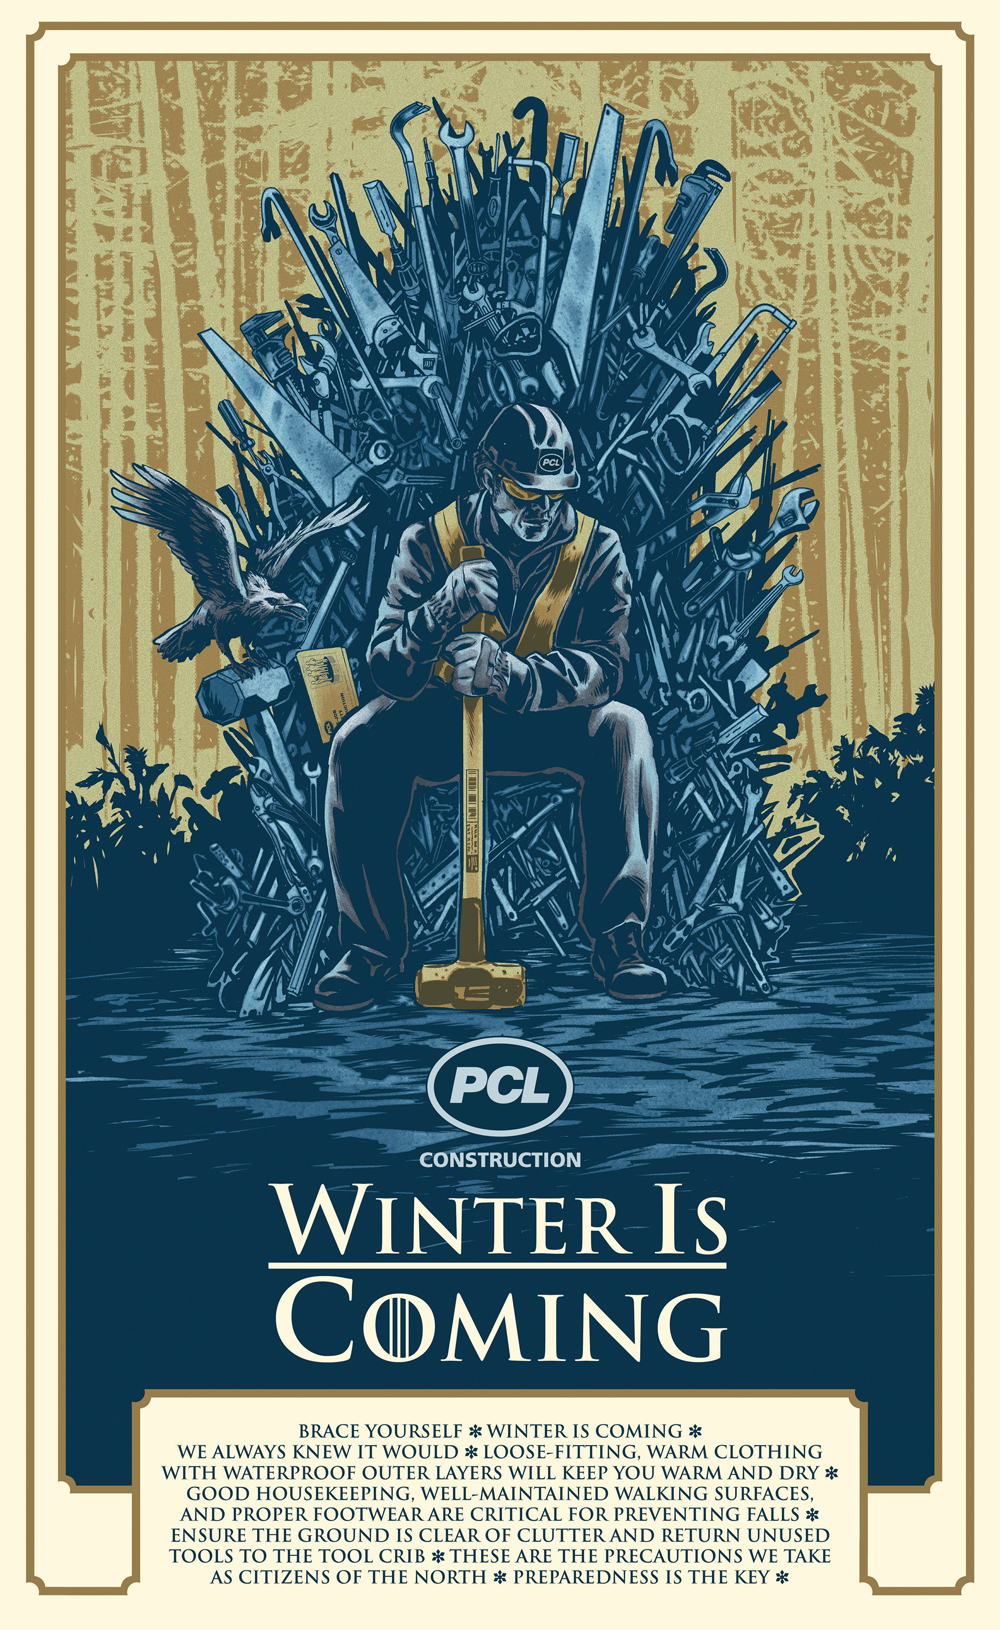 PCL Winter is Coming poster